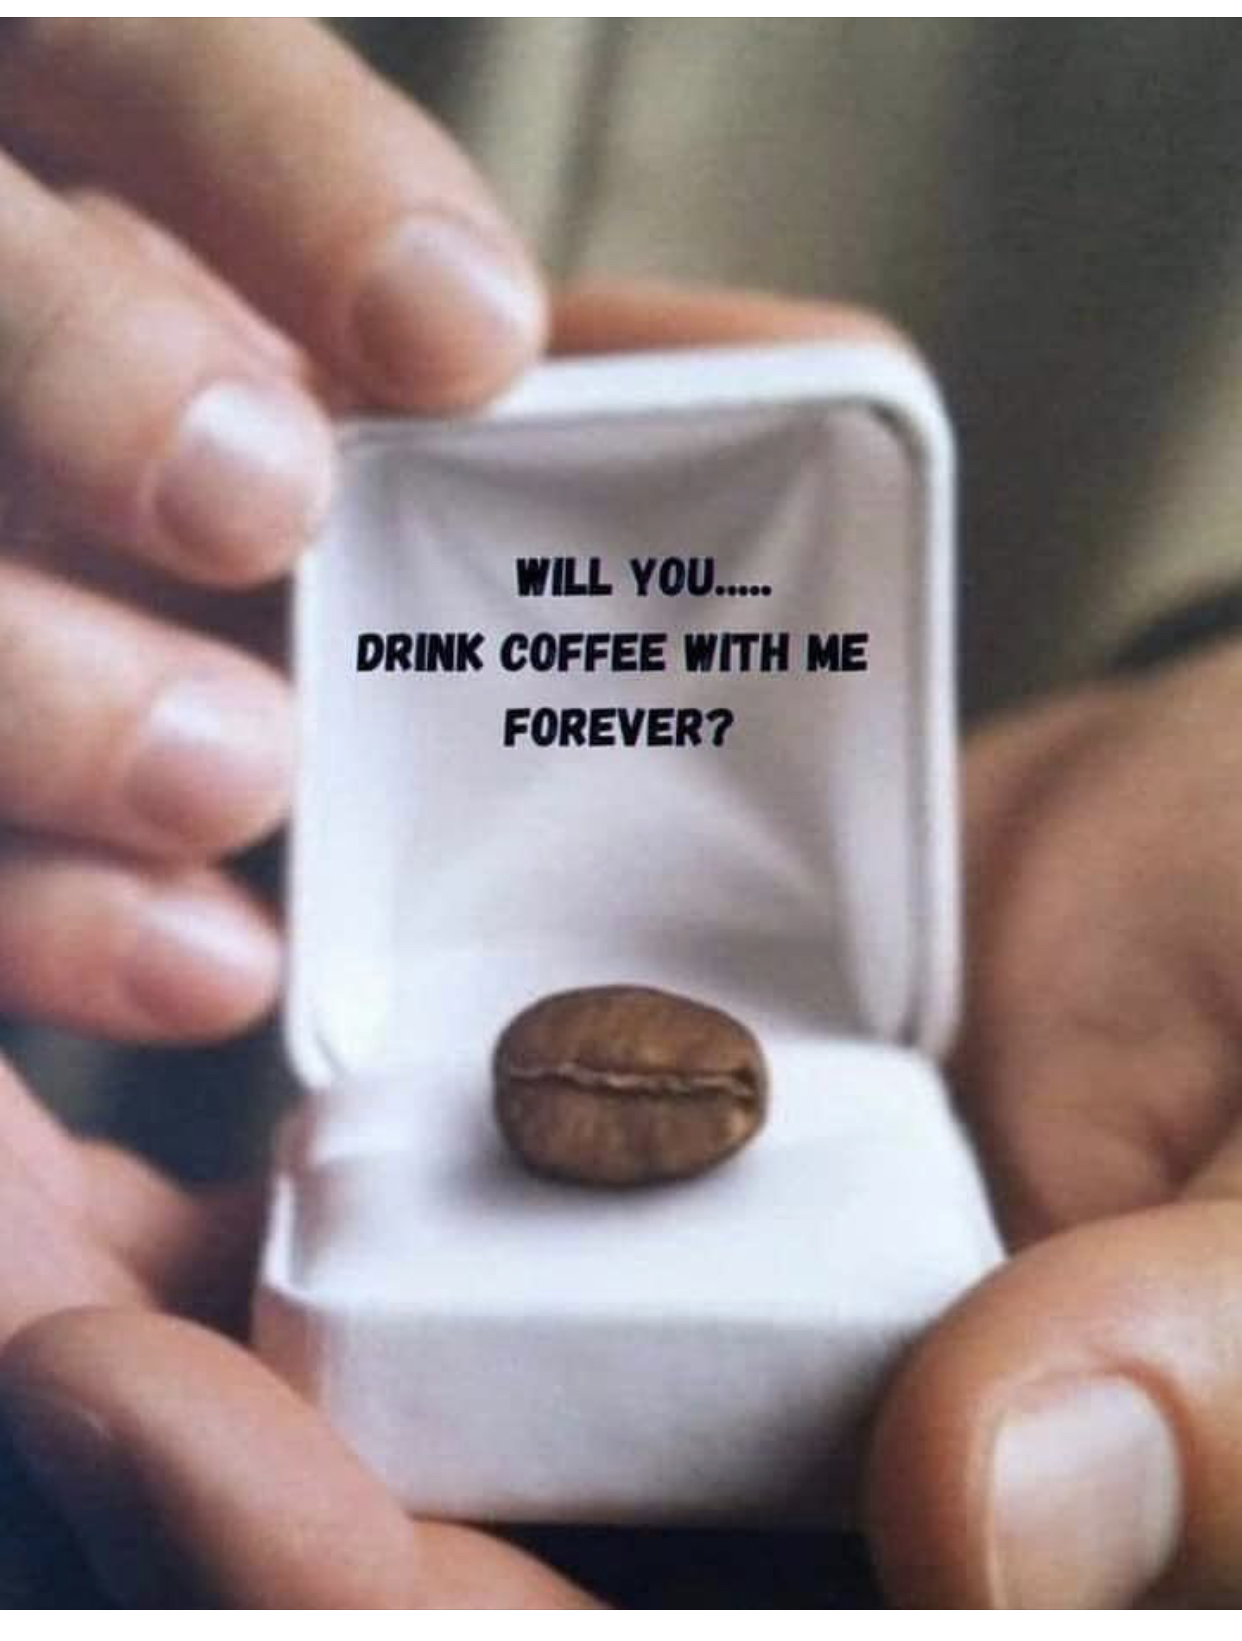 This is from Deanies fb page. Victor of course I'll have coffee with you forever ❤️   I even posted a cup that his military buddies gave him for best coffee ever. ❤️